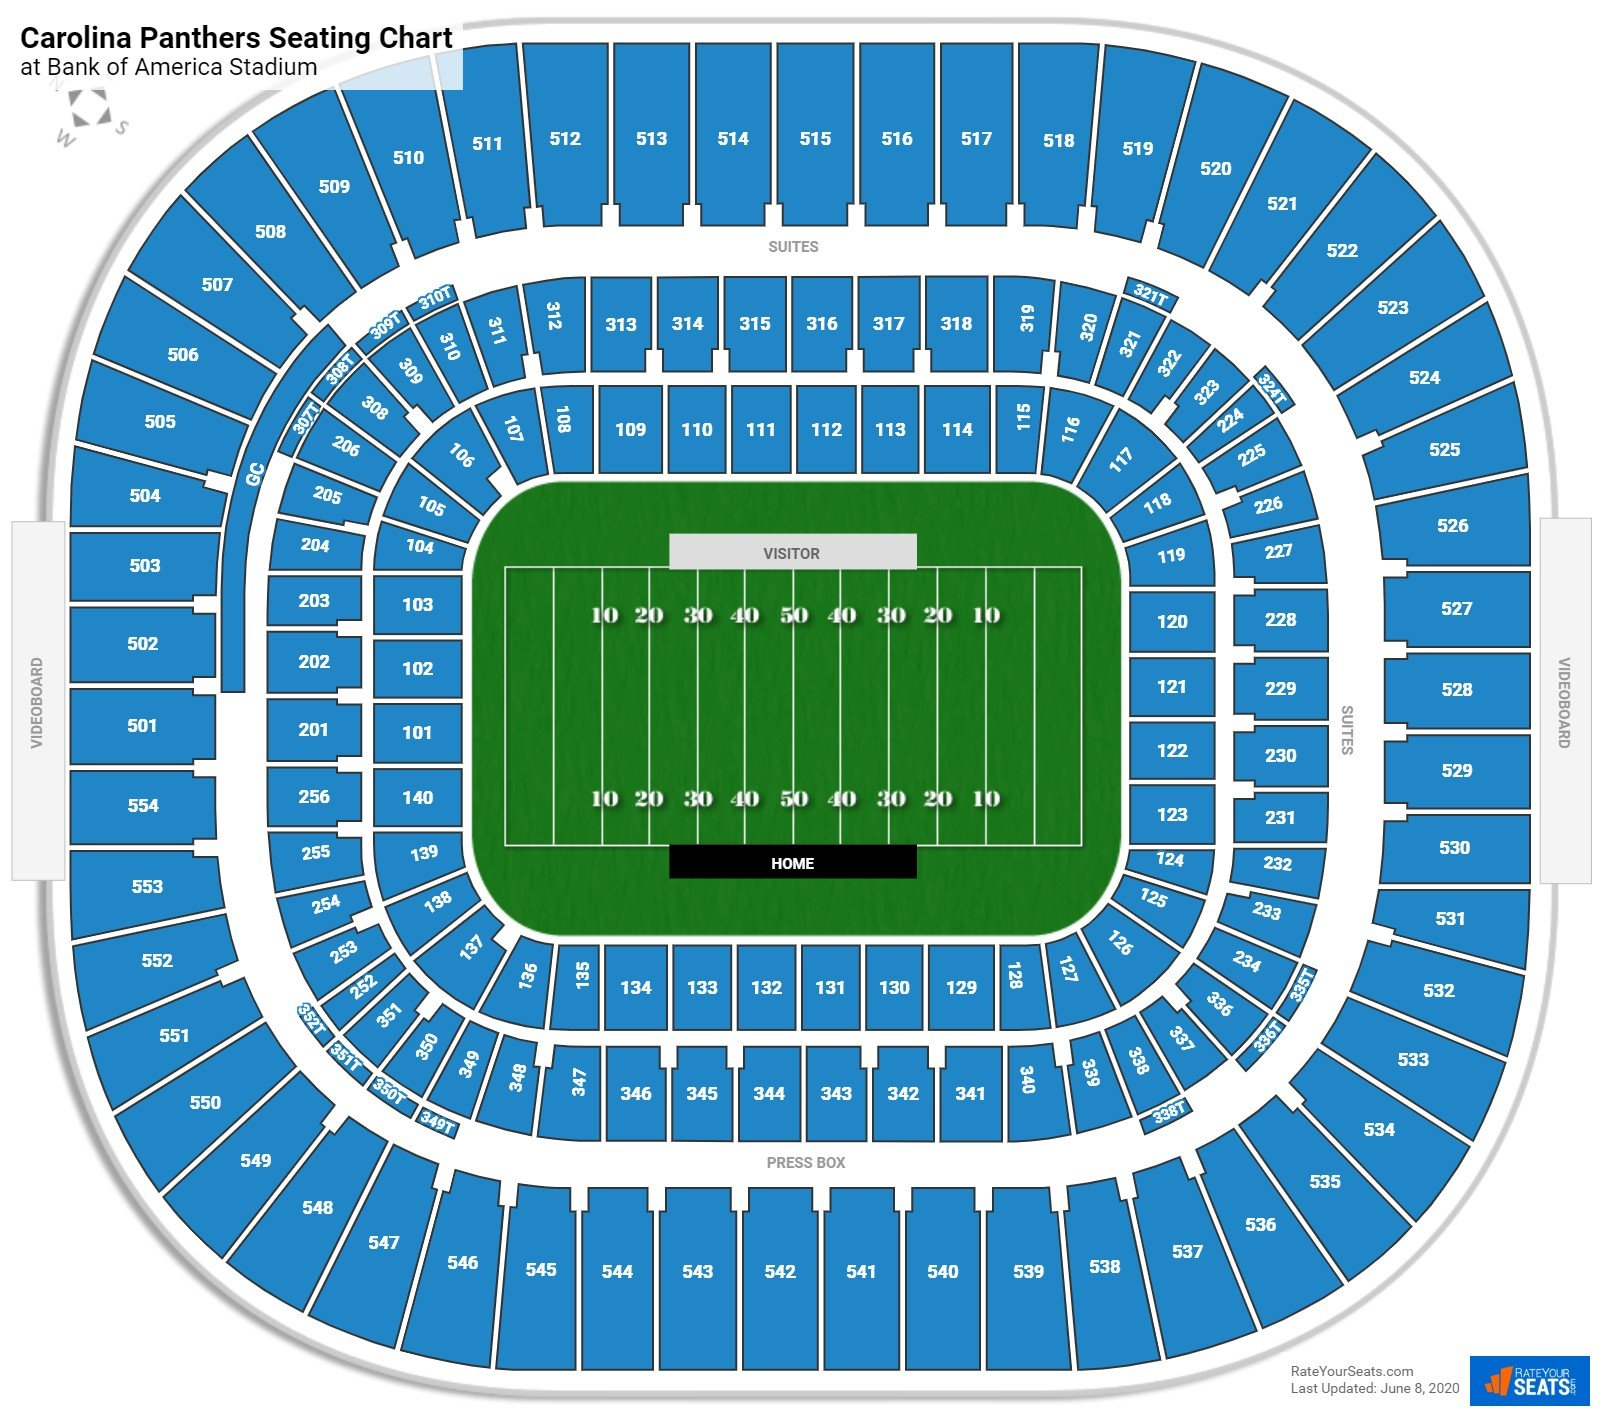 Section 120 at Bank of America Stadium - RateYourSeats.com